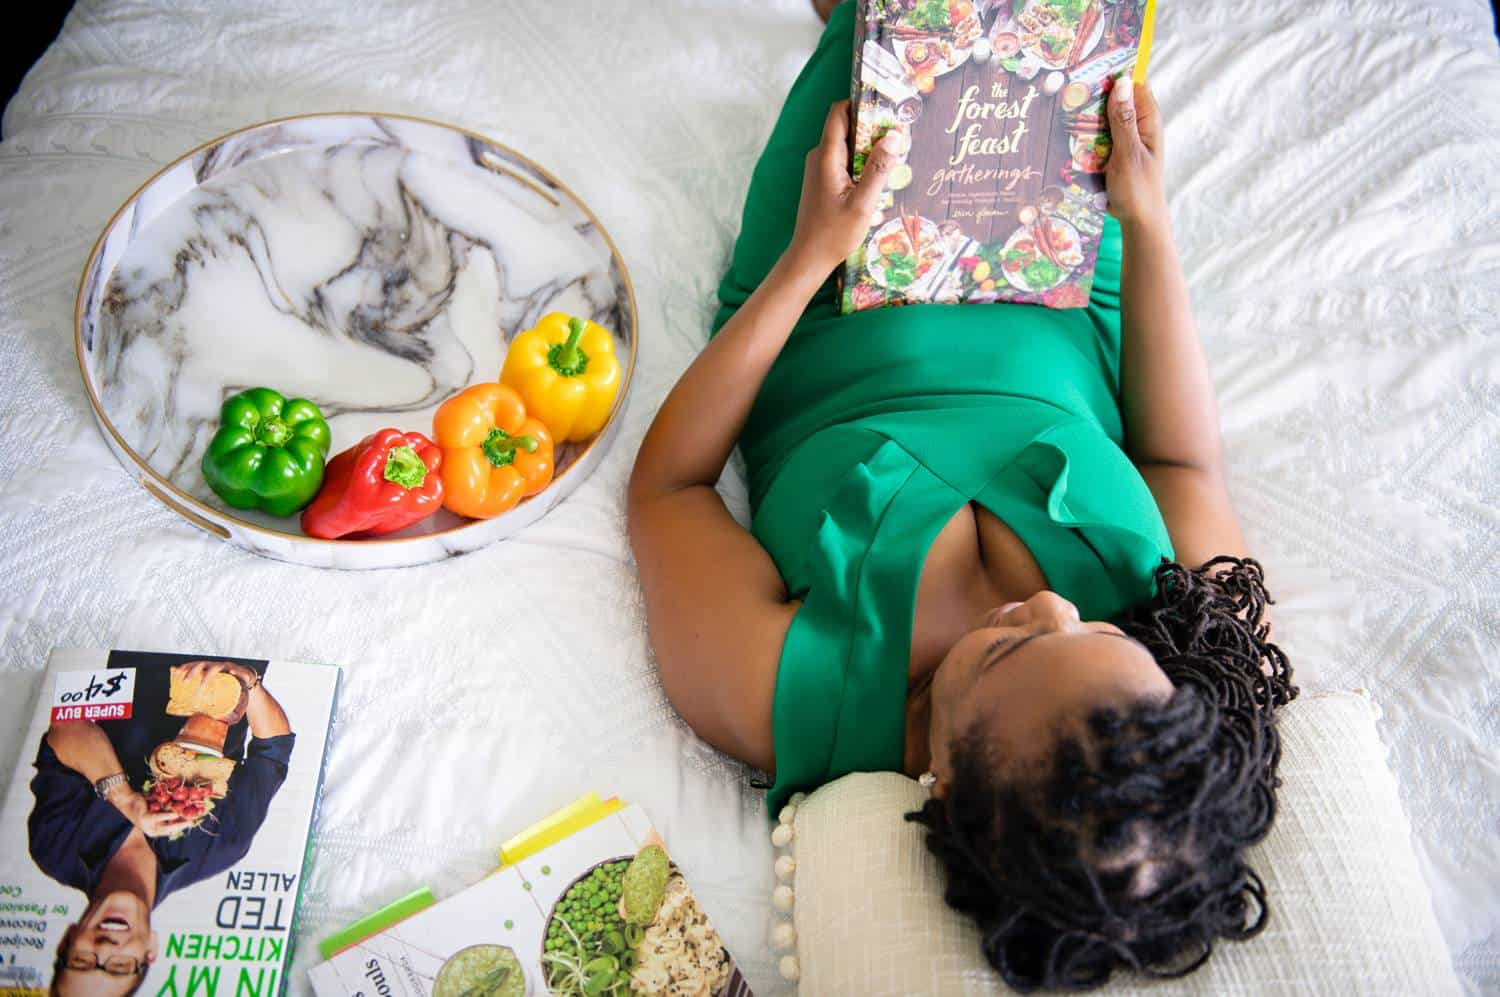 A Black woman in a satin, emerald green dress lies on a white bed reading a food magazine. Beside her is a marble tray of fruits and vegetables, along with a small stack of recipe magazines.